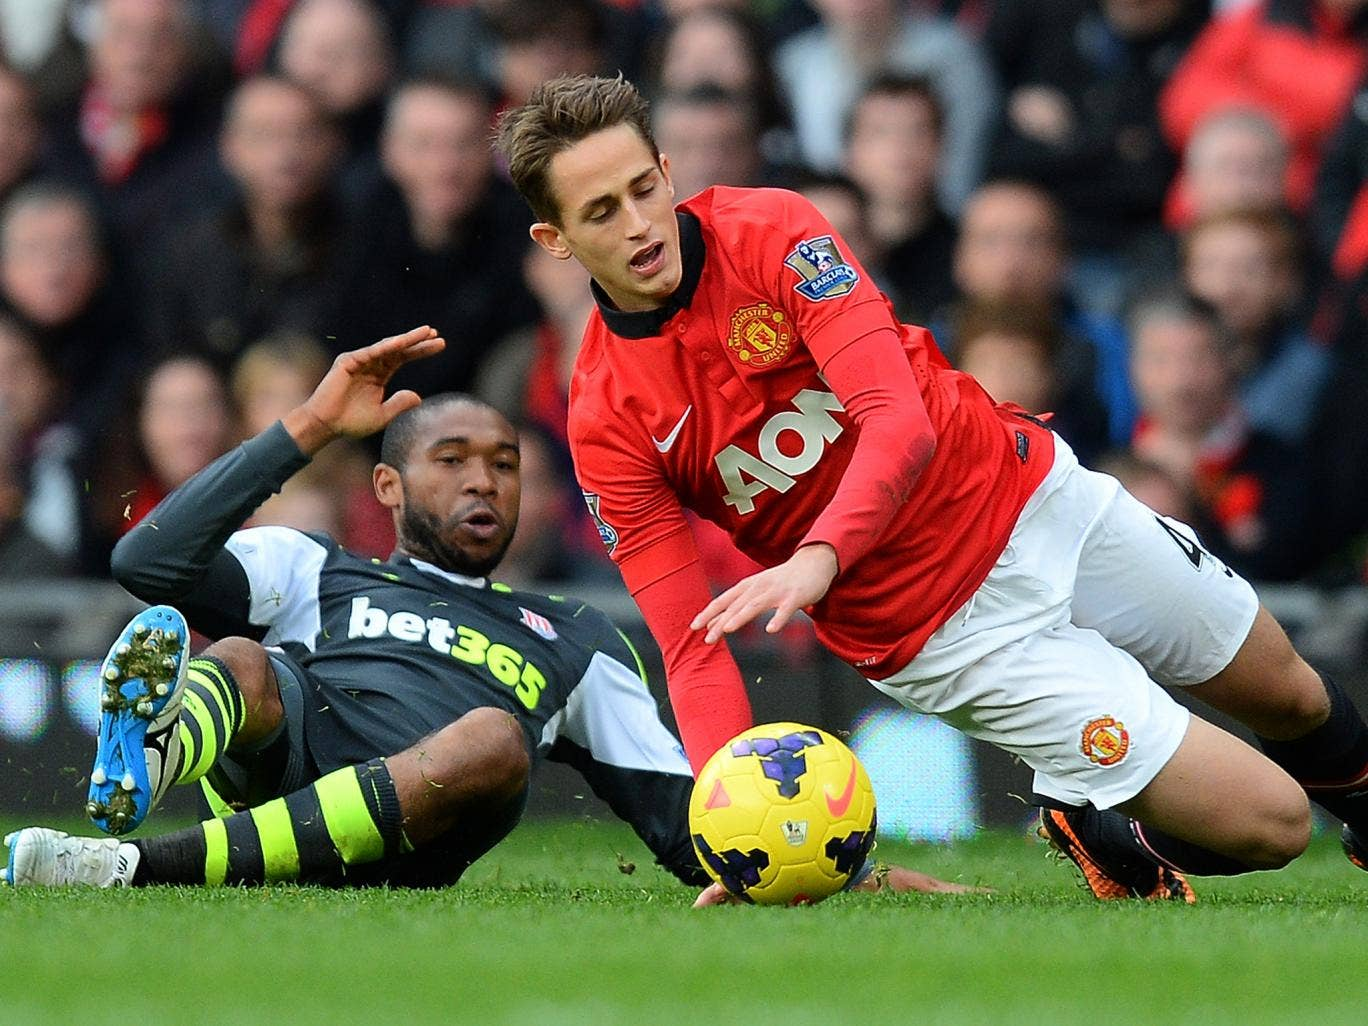 David Moyes has praised Manchester United youngster Adnan Januzaj